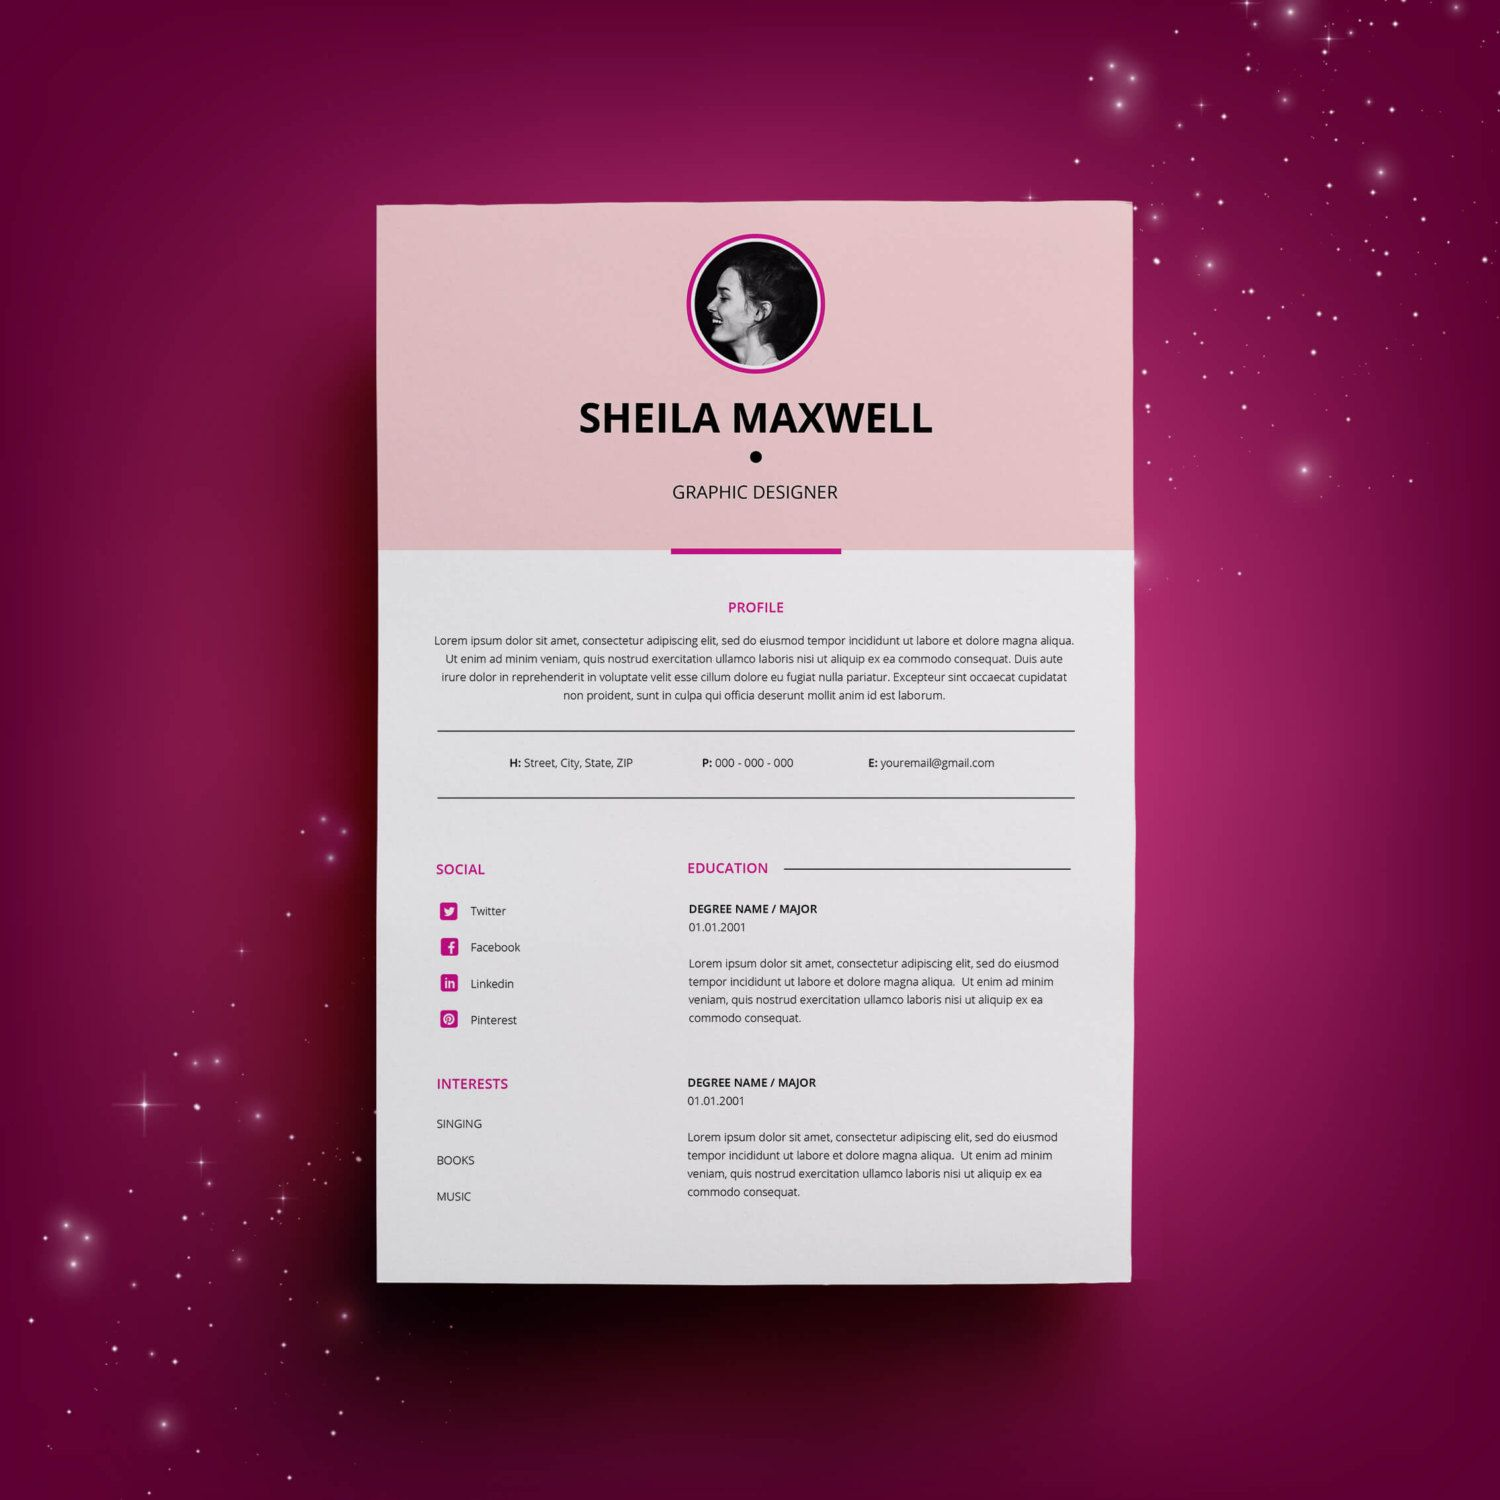 Cv Templates Design%0A Creative Resume Template  CV Template for MS Word  Professional Resume  Modern  Resume Design  Resume Instant Download  Buy One Get One Free